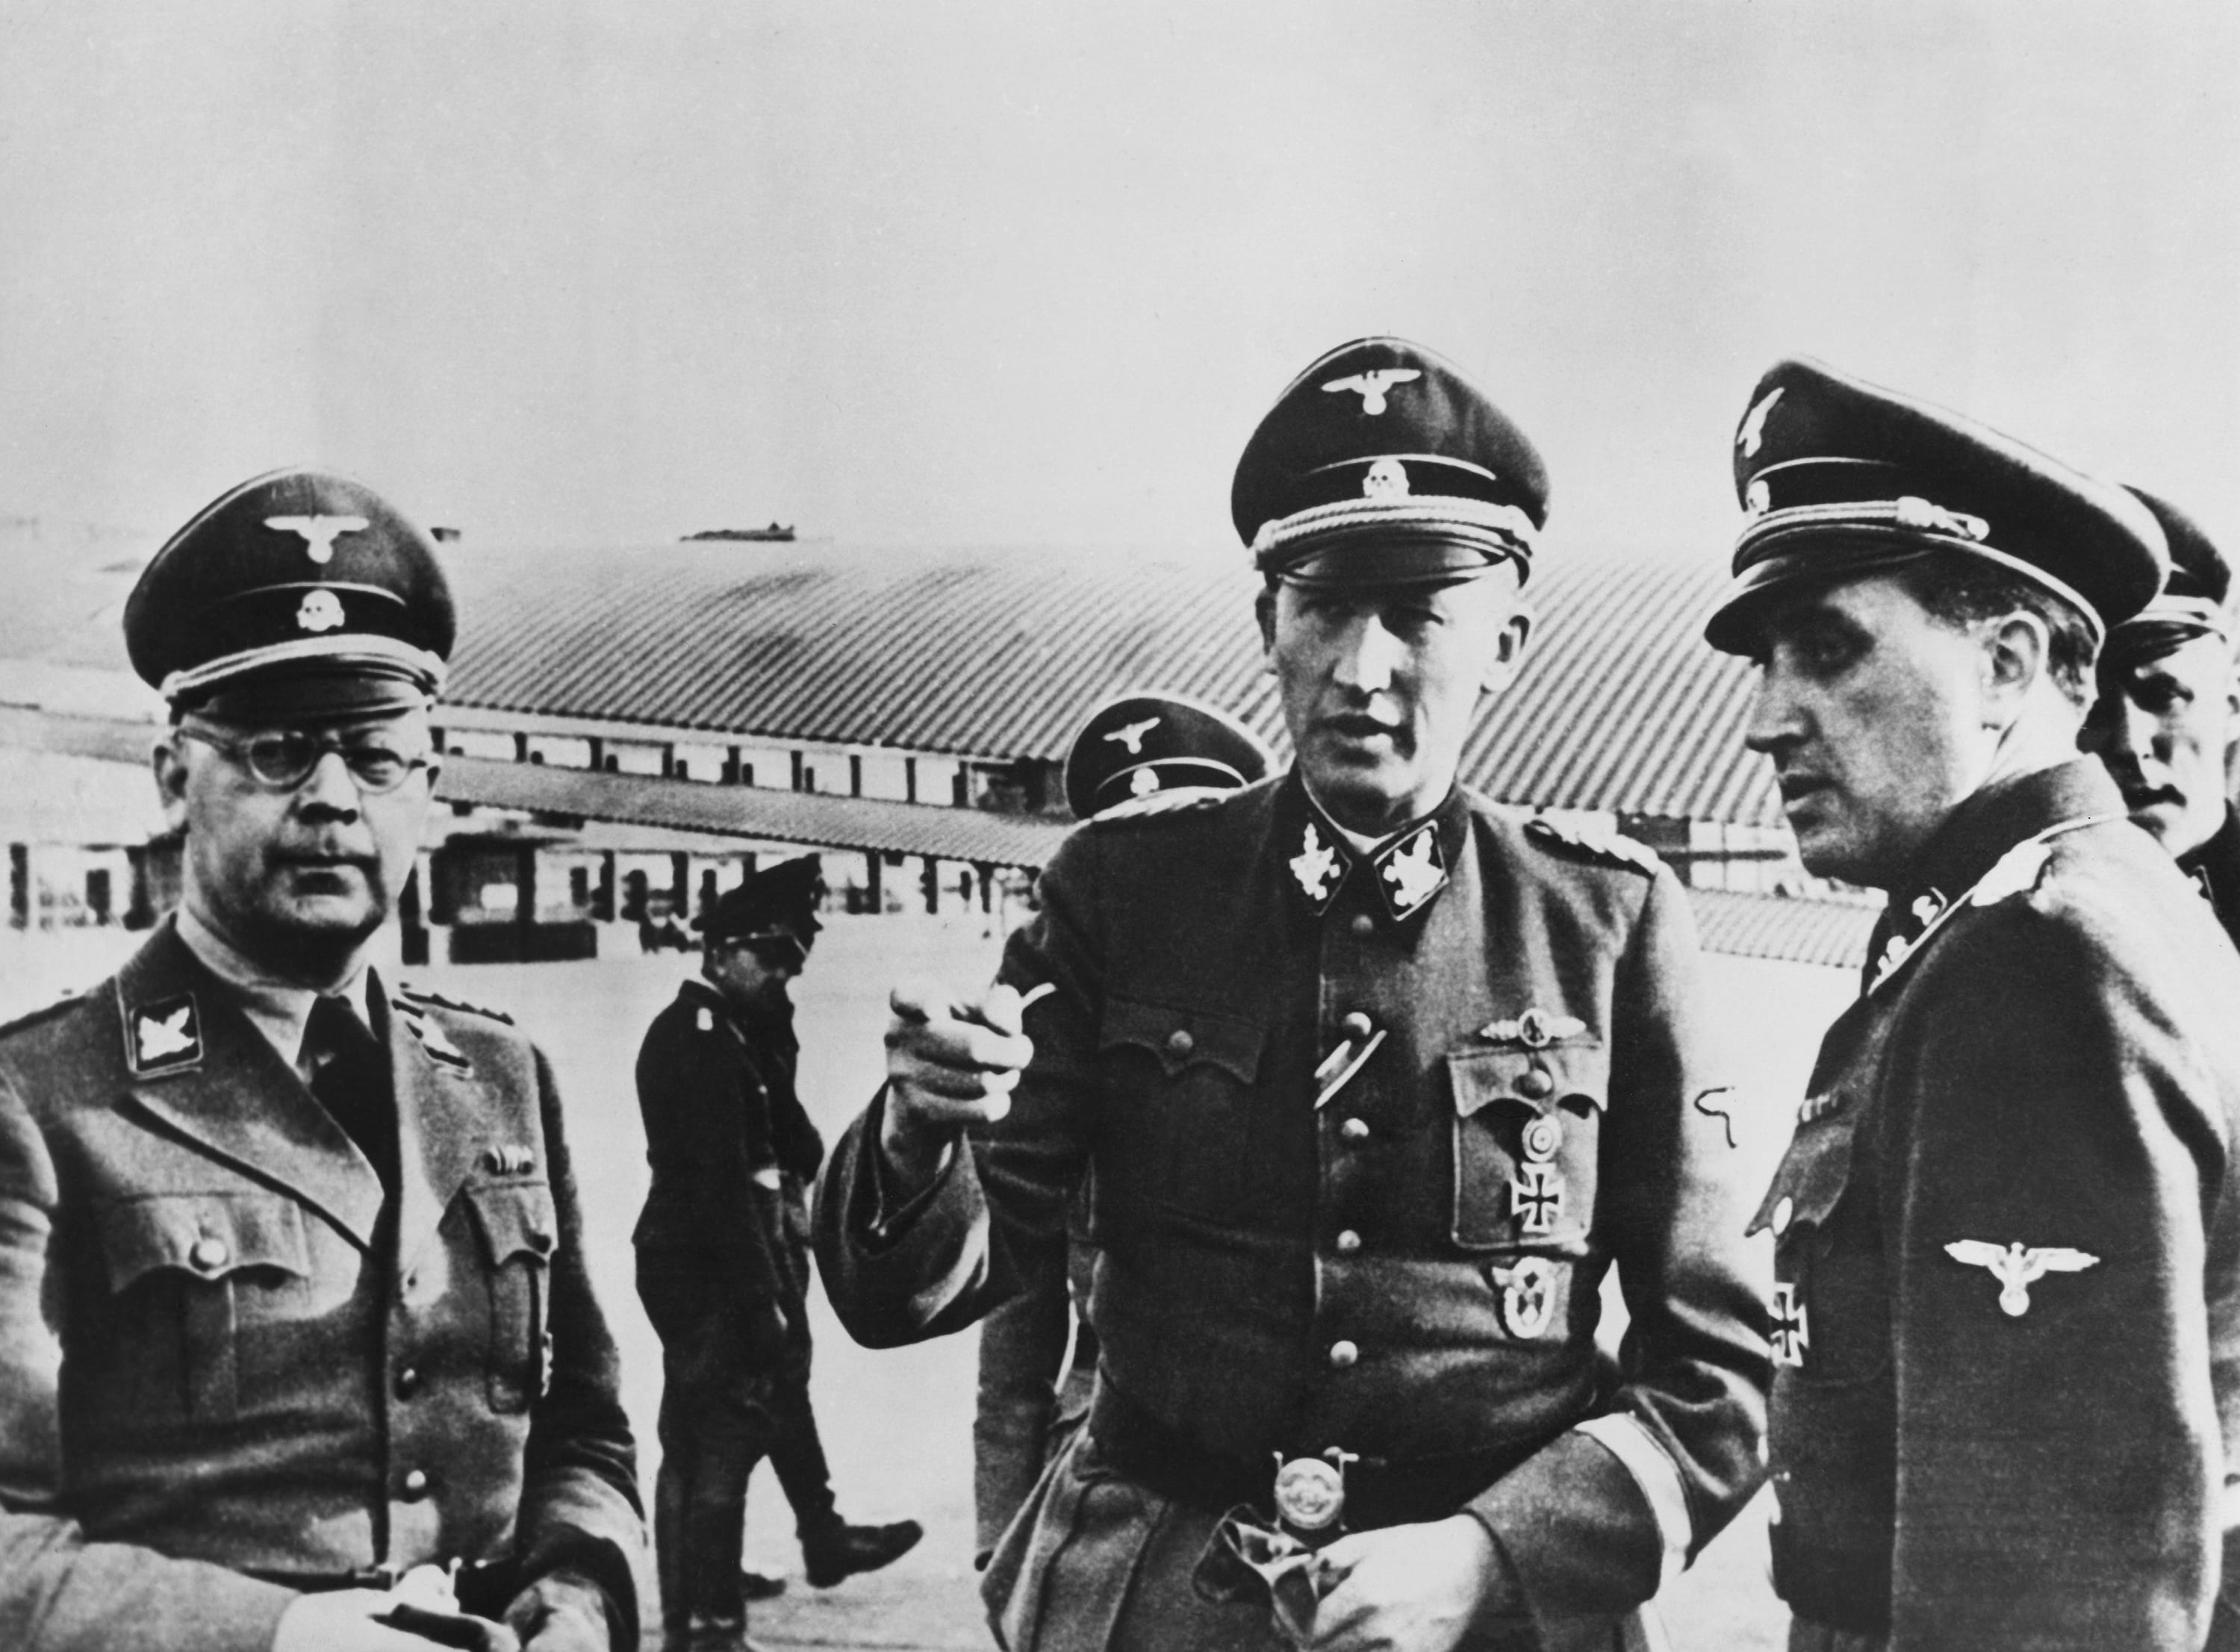 Reinhard Heydrich, center, known as the Reich protector of Bohemia and Moravia, on a visit to Paris with Major General of Police Oberg, newly appointed chief of police in occupied France, left, and Commander of Secret Police Dr. Knochen. Heydrich's death on June 4, 1942, after an assassination attempt, caused mass reprisal executions of Czechs and the wiping out of the Czech village of Lidice. (AP Photo)